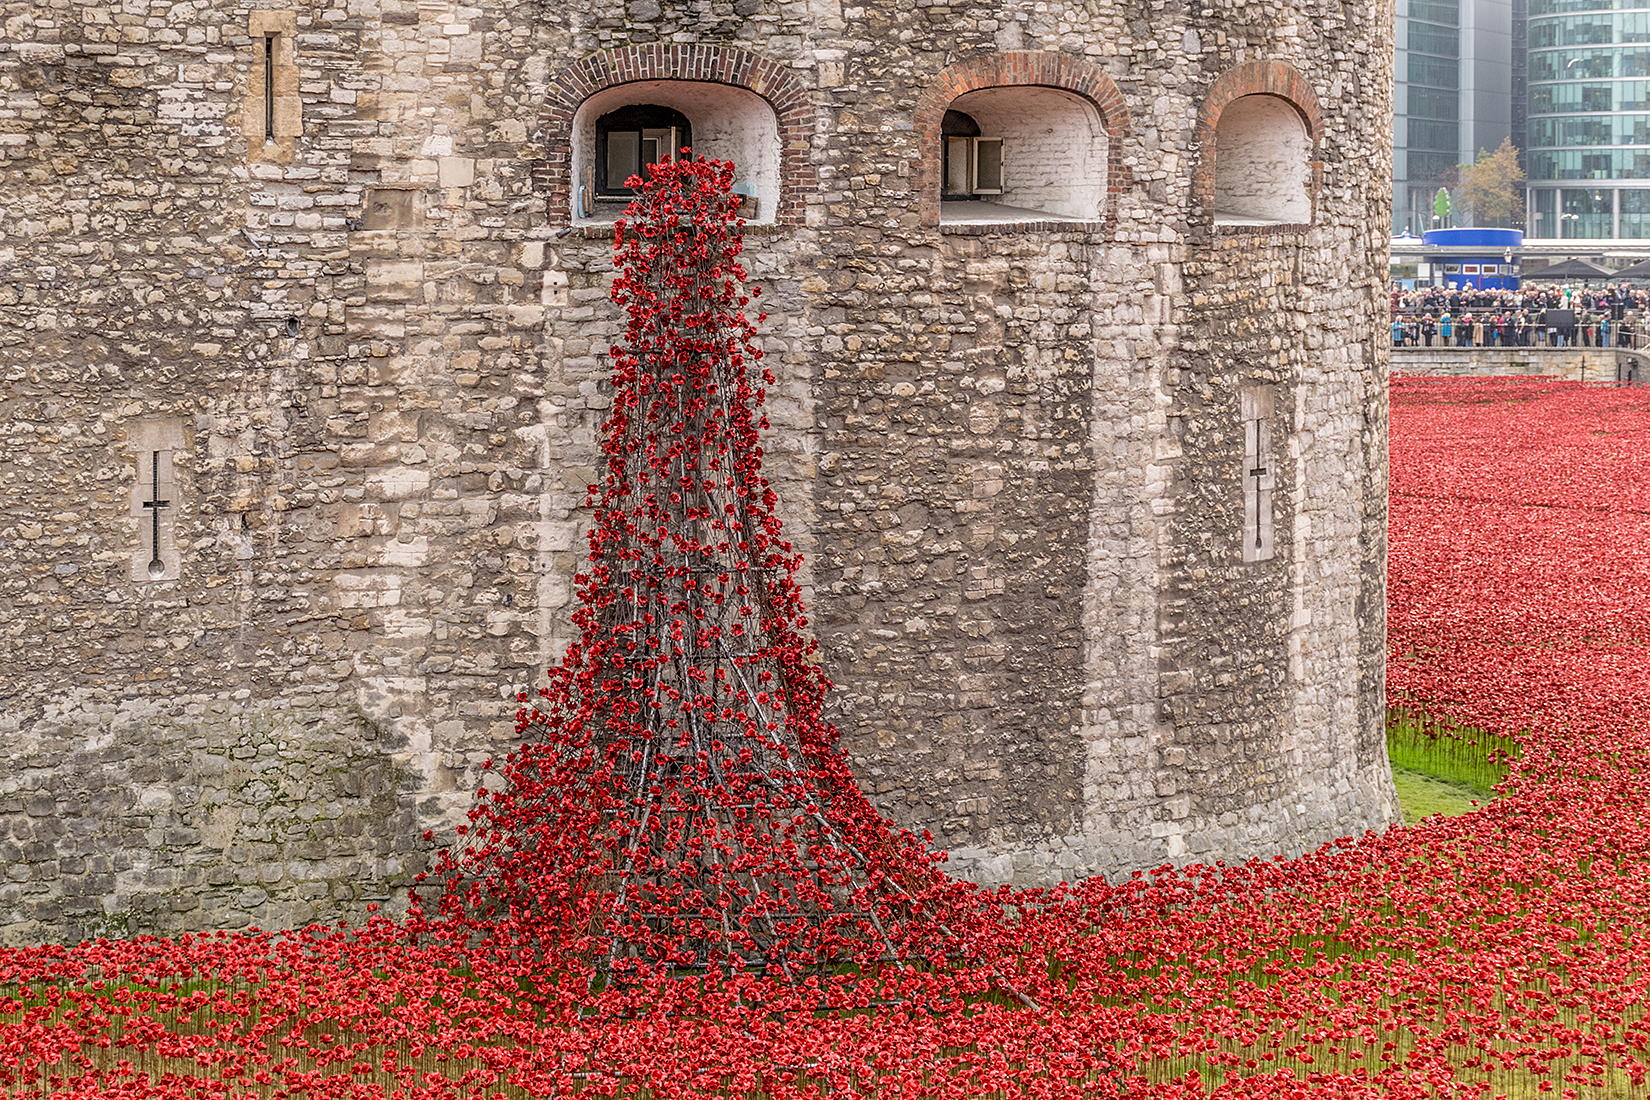 The 'Weeping Window' with poppies pouring from a window of the Tower